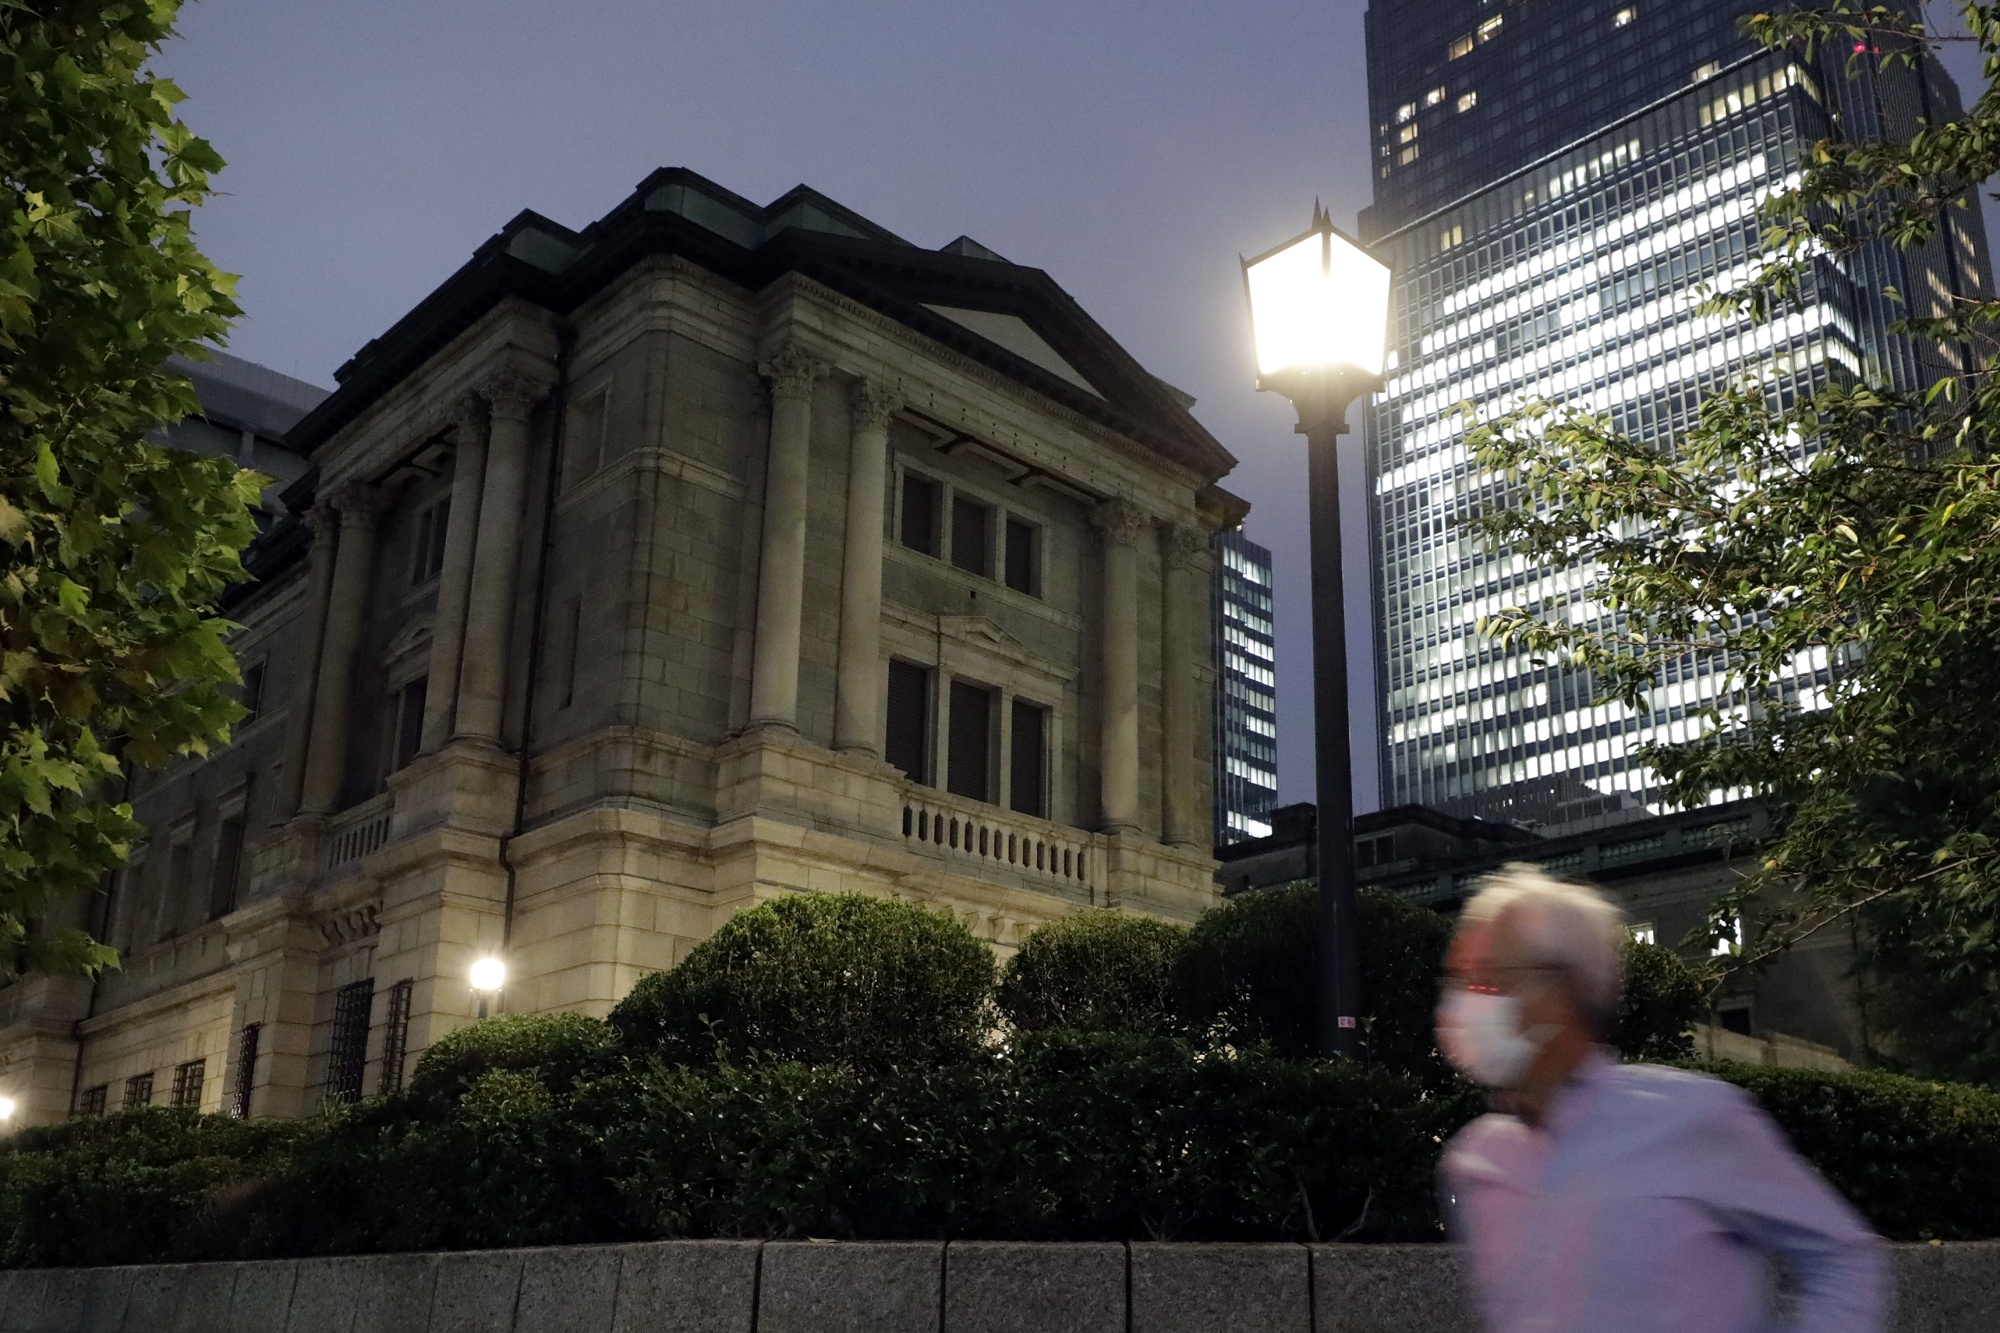 A pedestrian wearing a protective mask passes by the Bank of Japan (BOJ) headquarters at dusk in Tokyo, Japan.